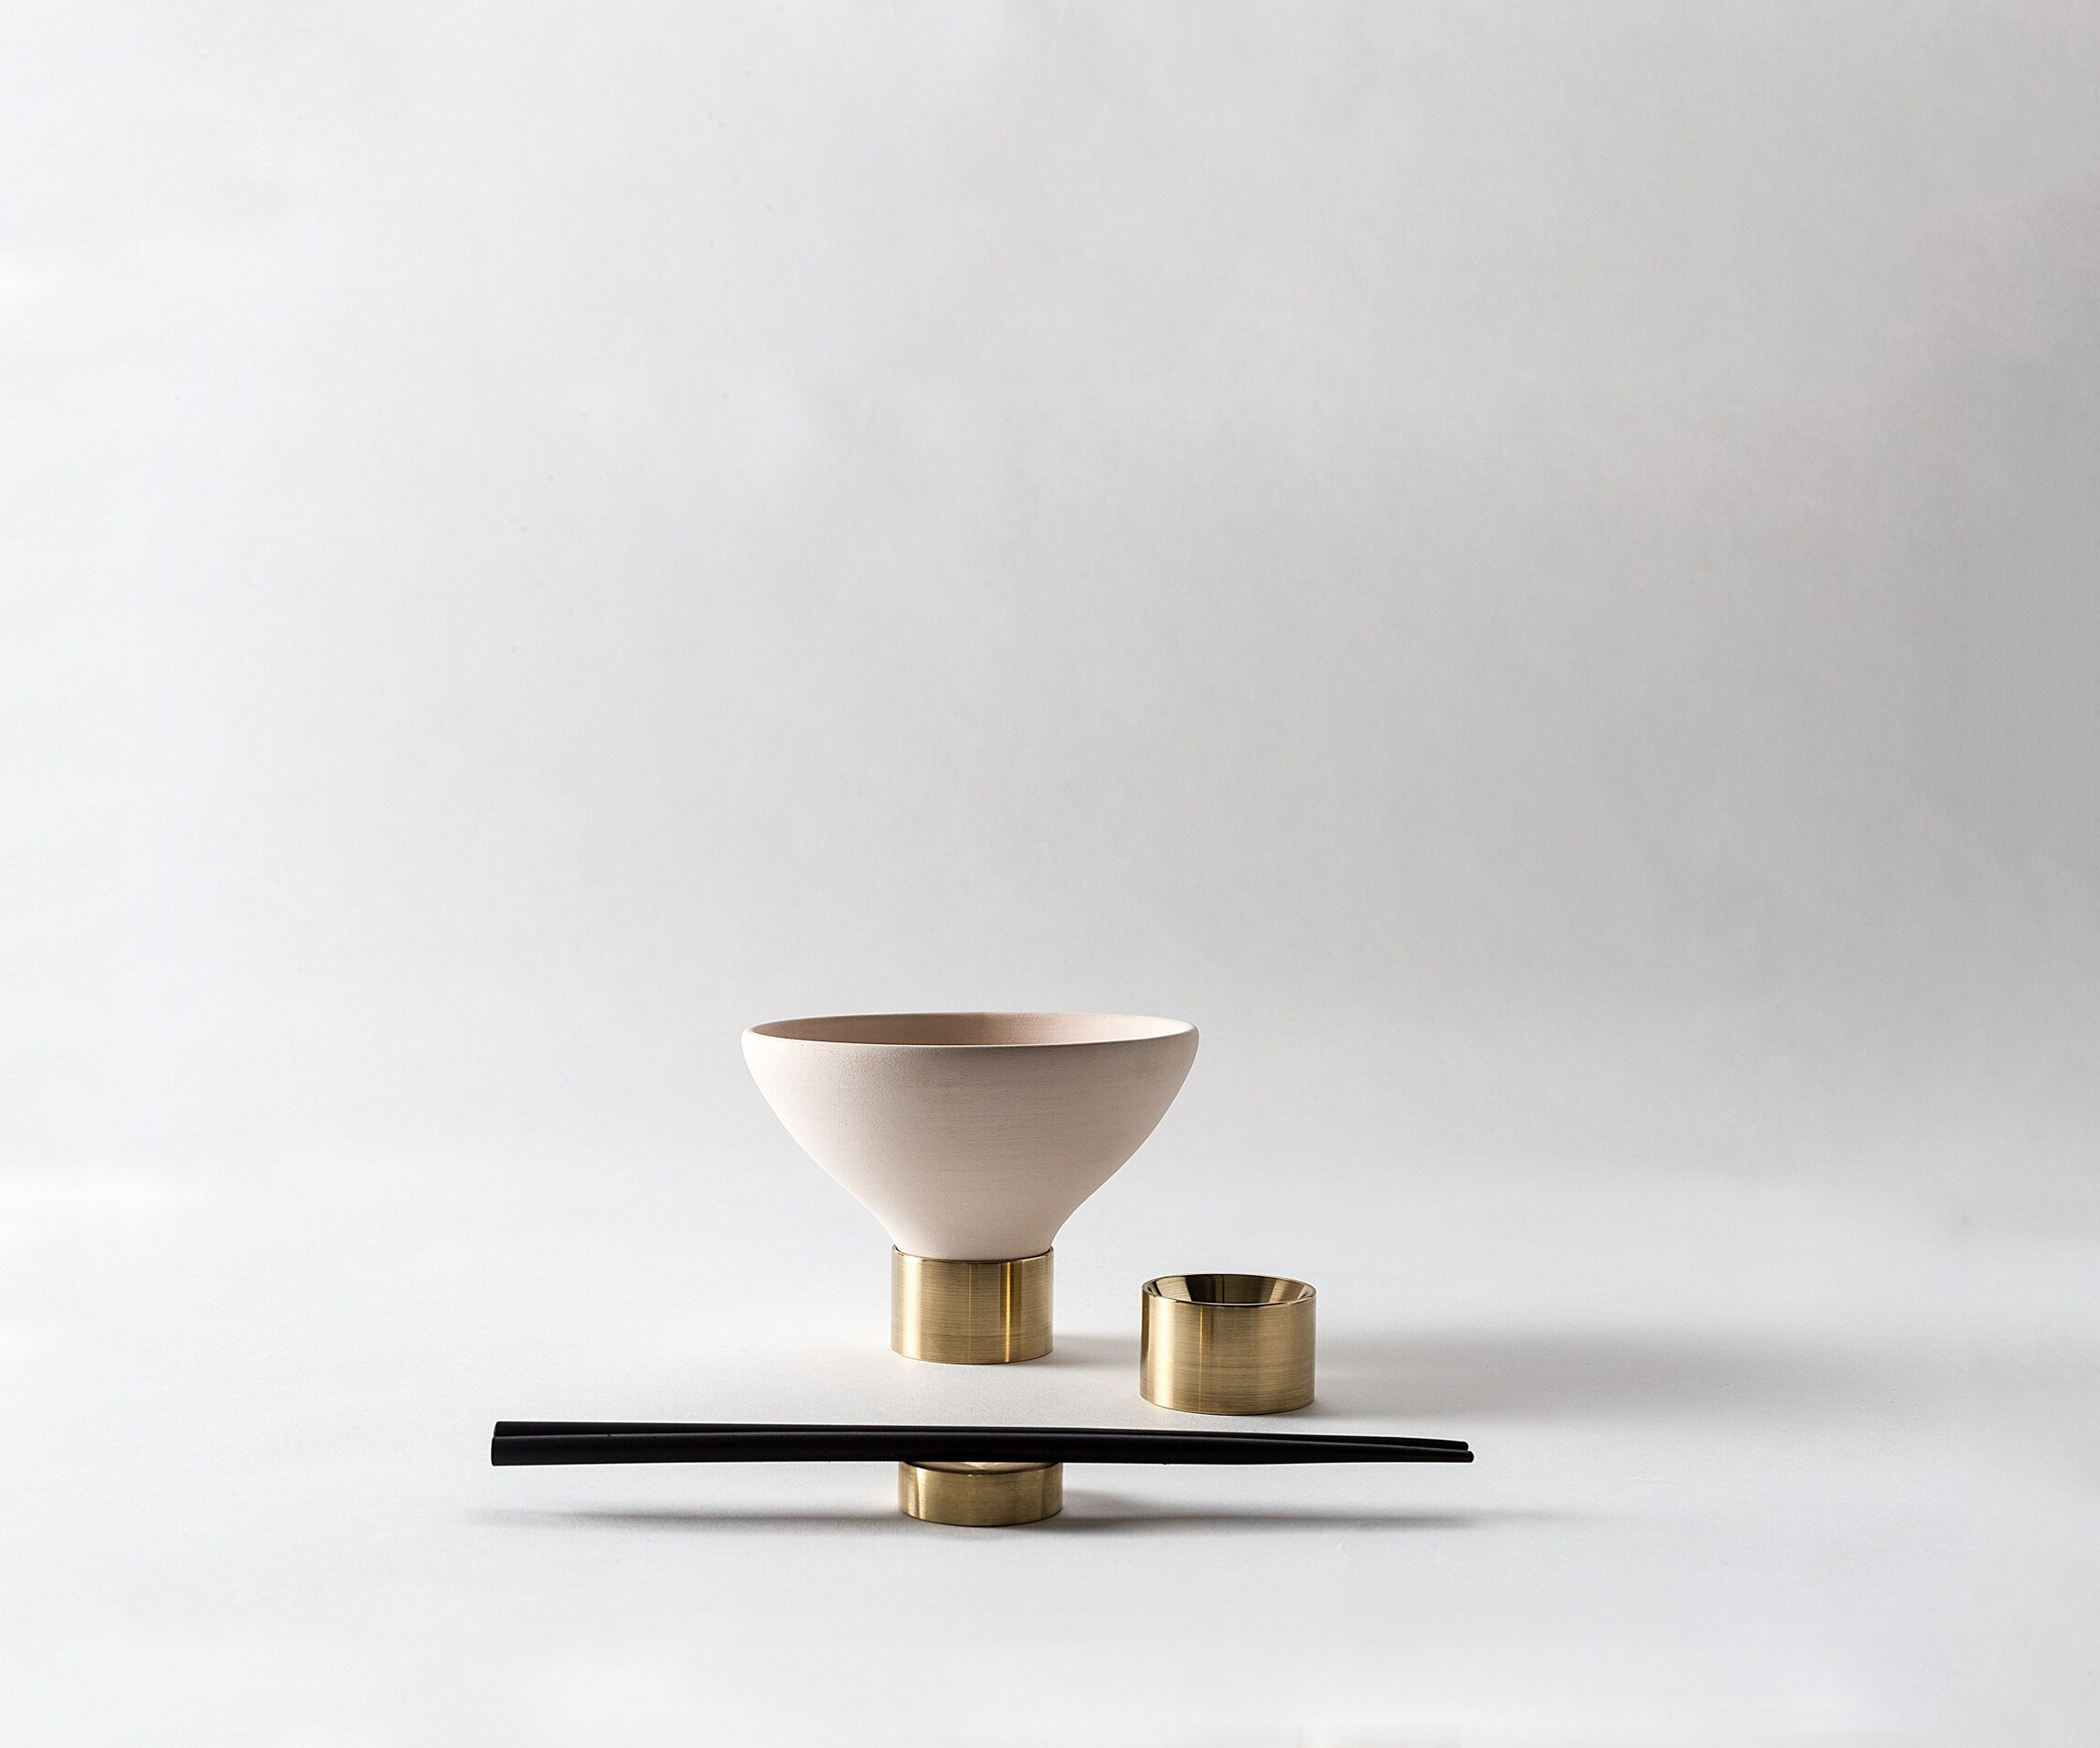 Home accessories from Analogue collection.